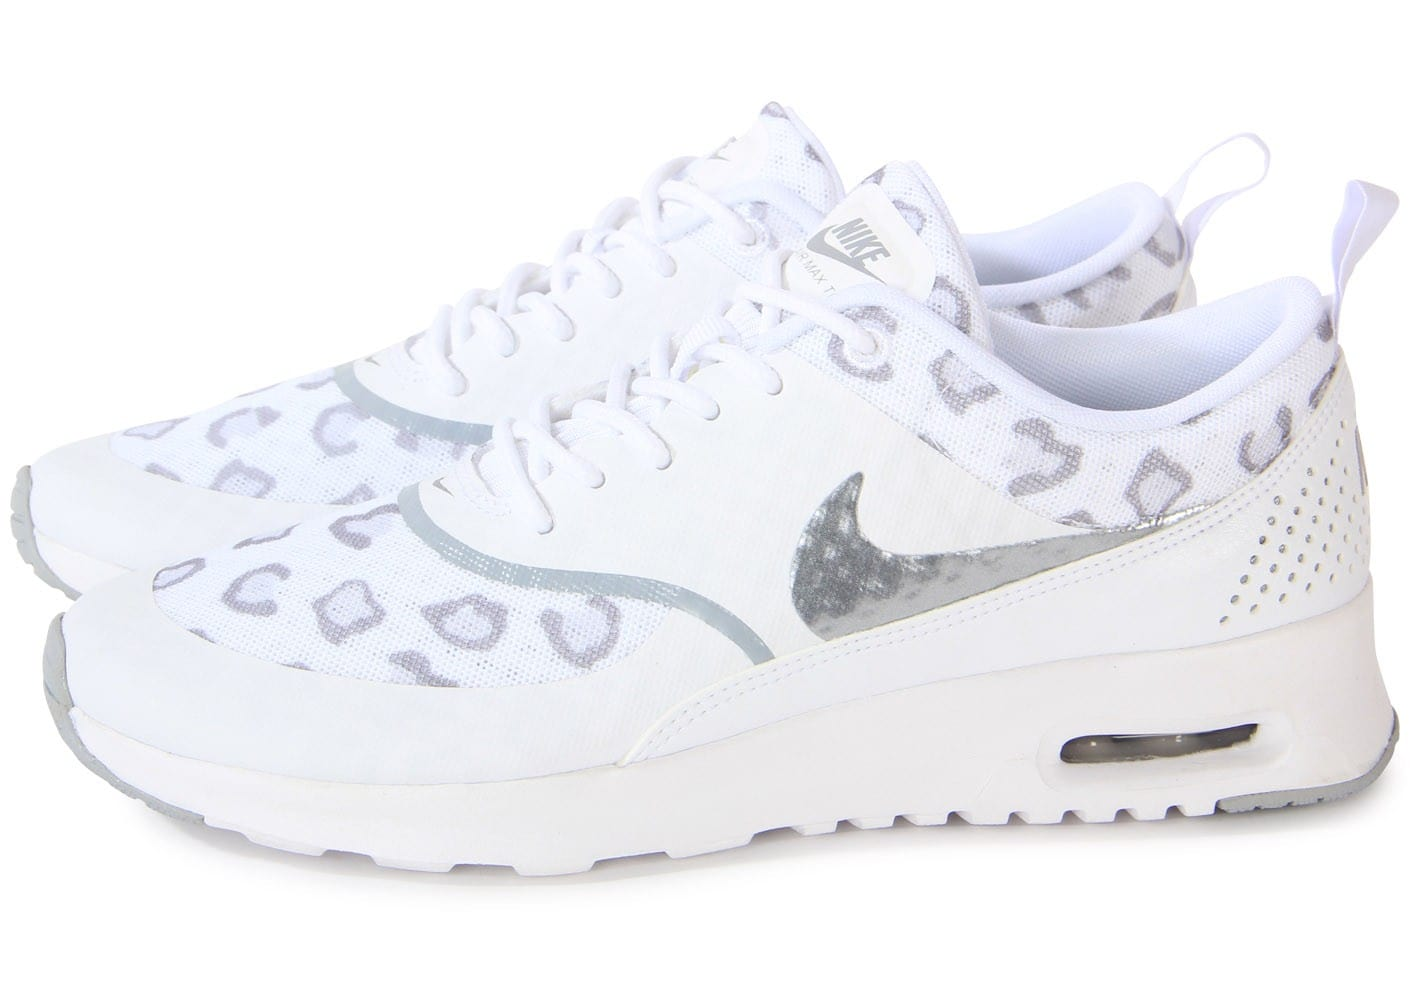 nike air max thea blanche homme air max 90 solde. Black Bedroom Furniture Sets. Home Design Ideas